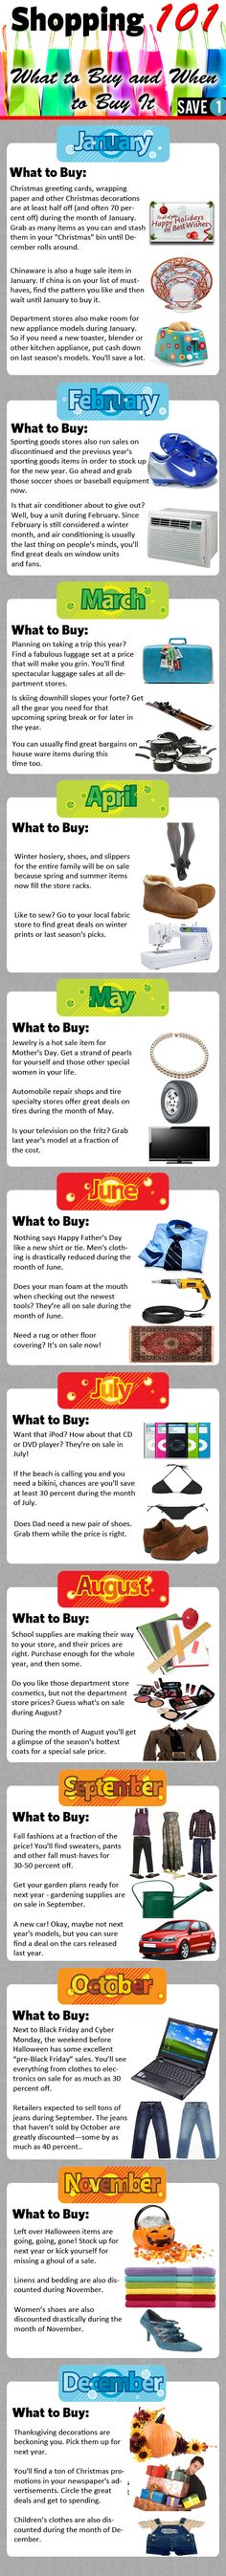 When to buy stuff.